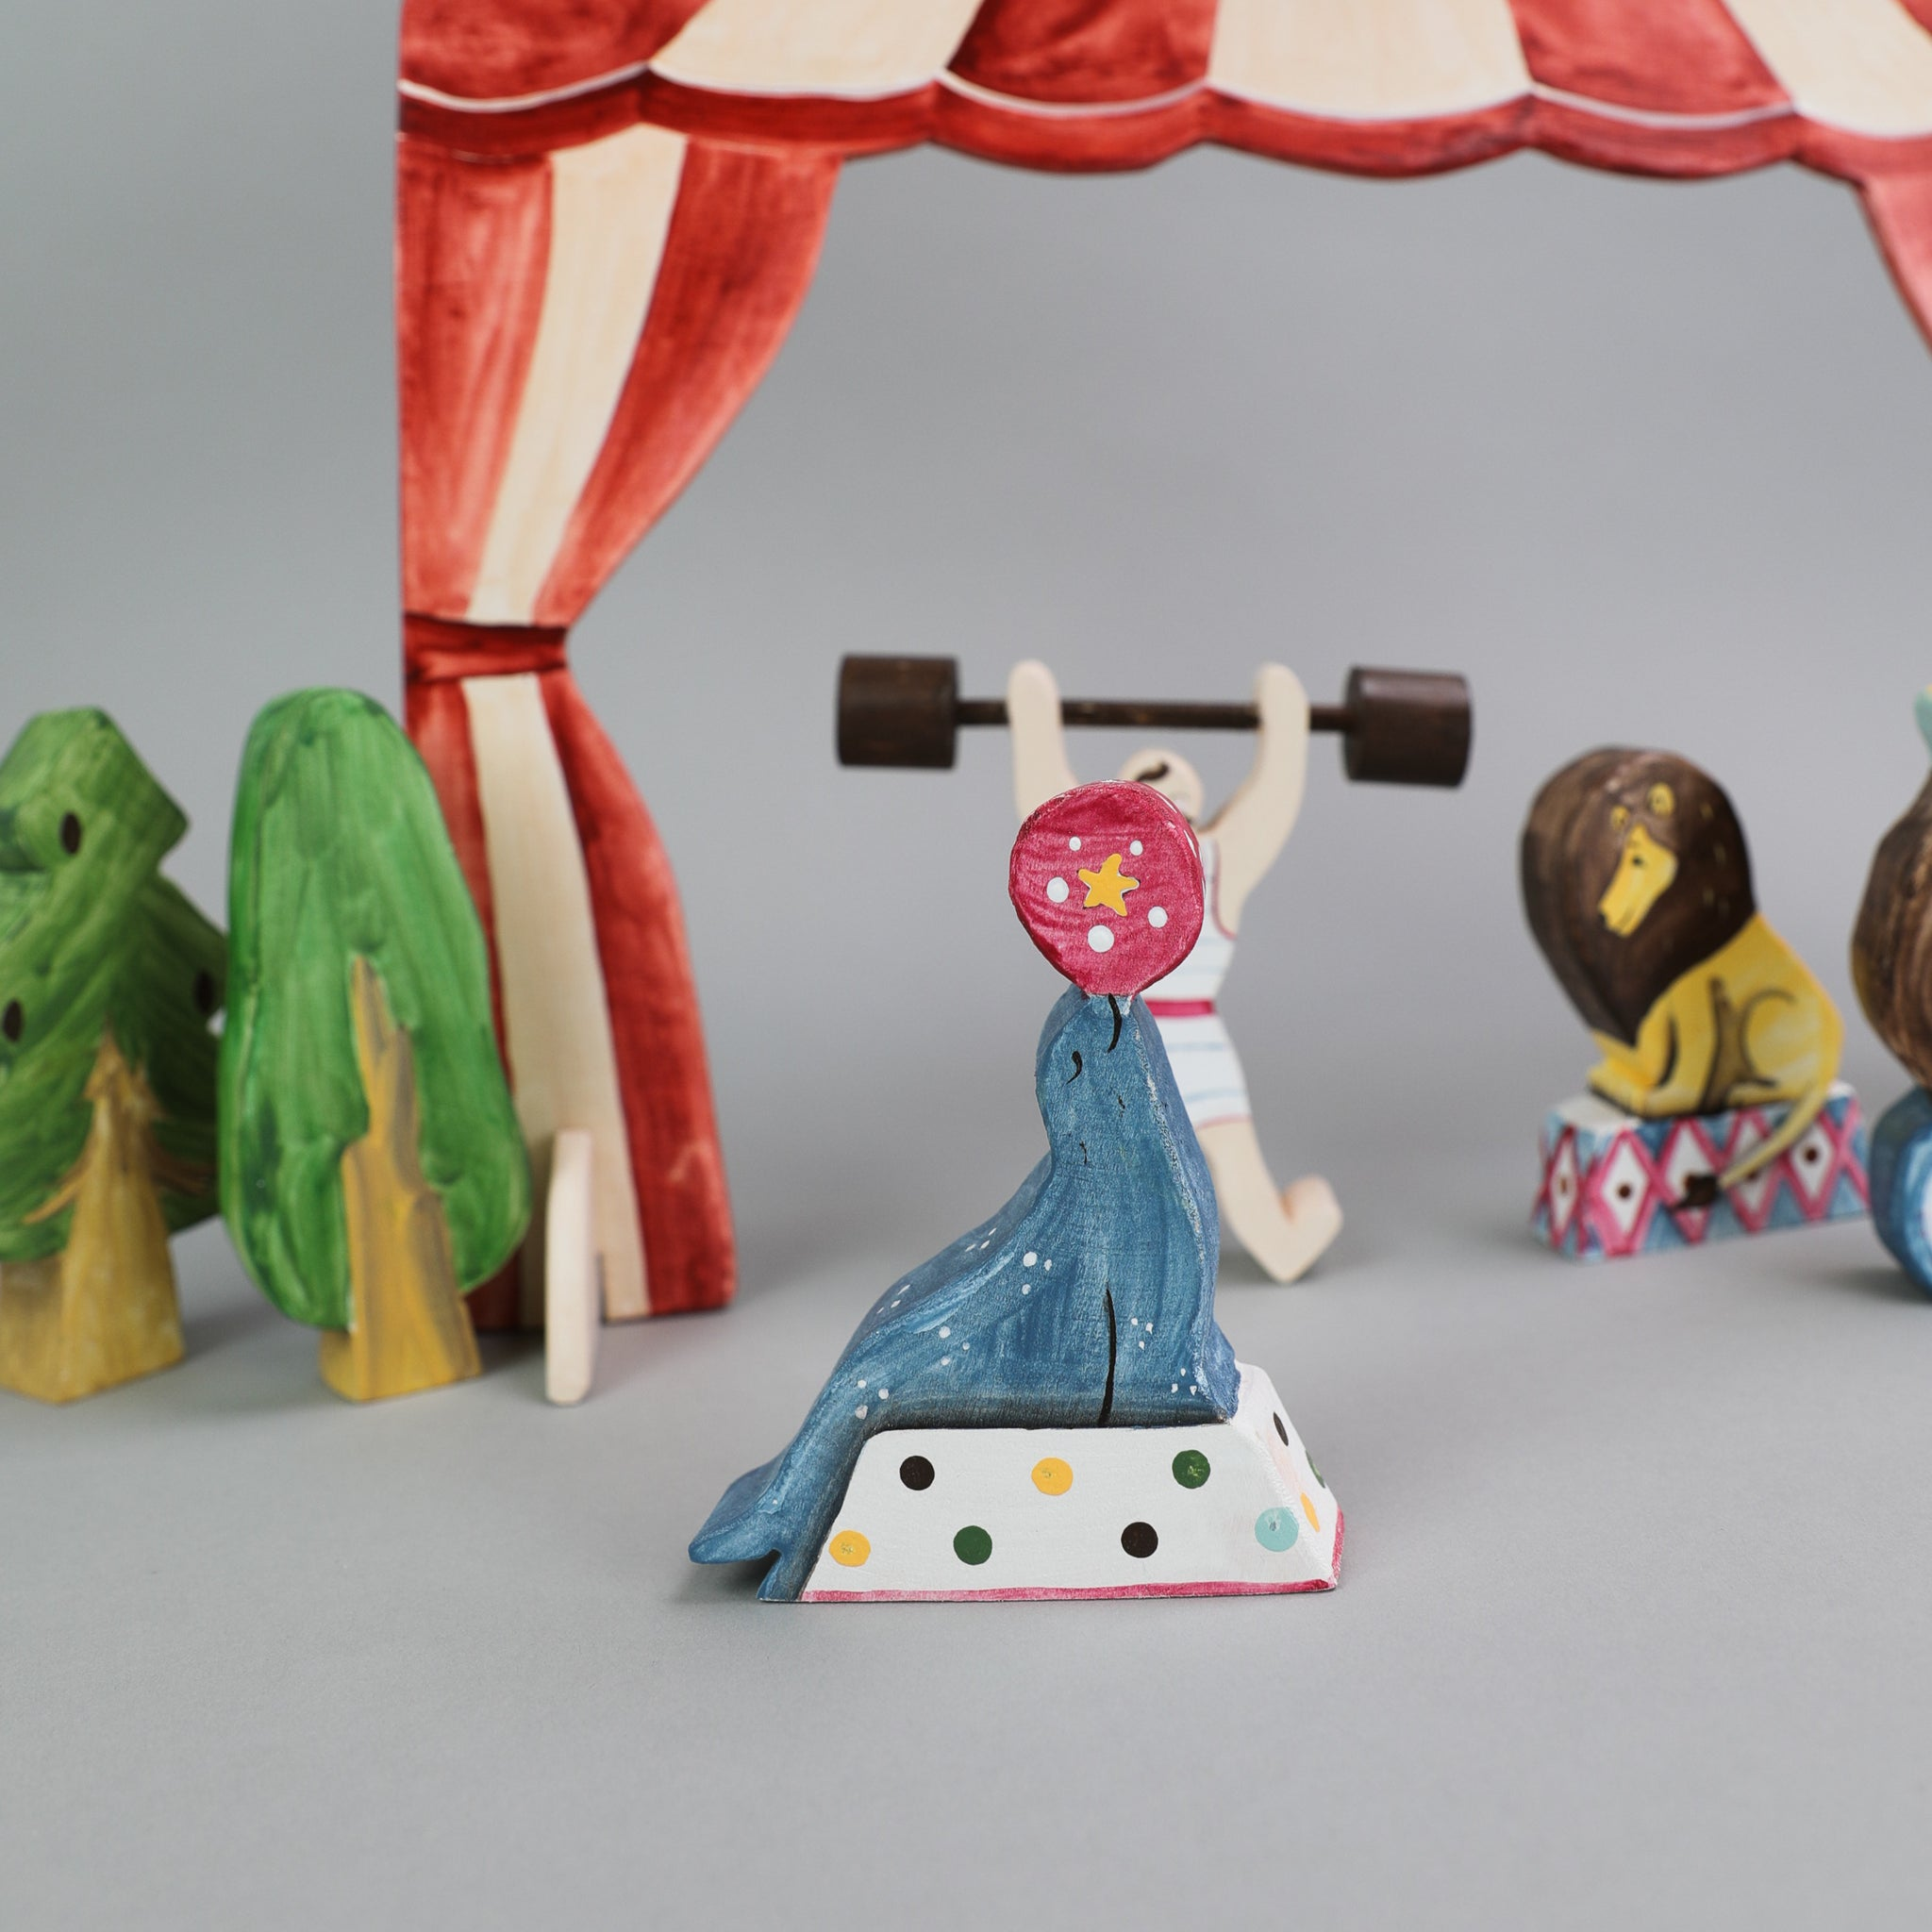 Wood Circus Figures and Animals Toys Educational Toy is Great for Building Blocks Play Set Suitable for Boys and Girls Ages 2 and Up TOYSTERS Wooden Play-A-Role Circus Playset for Toddlers